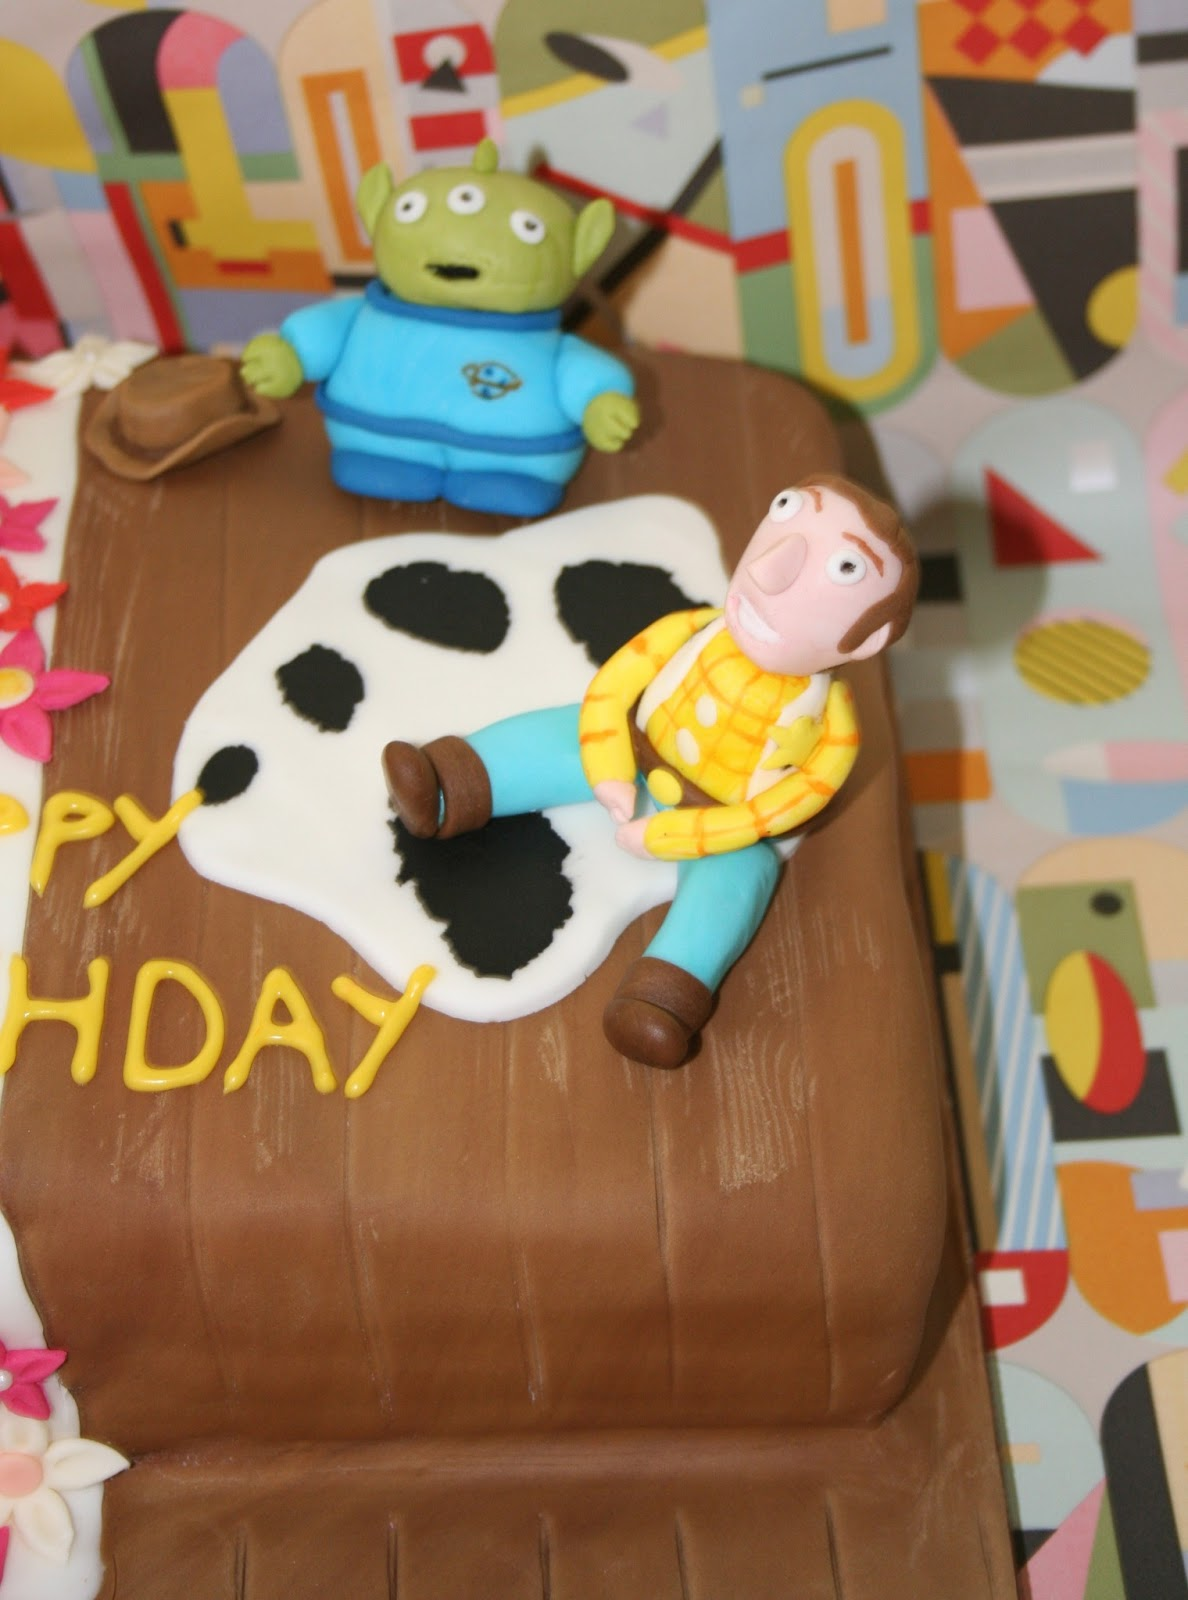 Hello Kitty And Toy Story Jessie Images : Chintzy cakes toy story and hello kitty cake